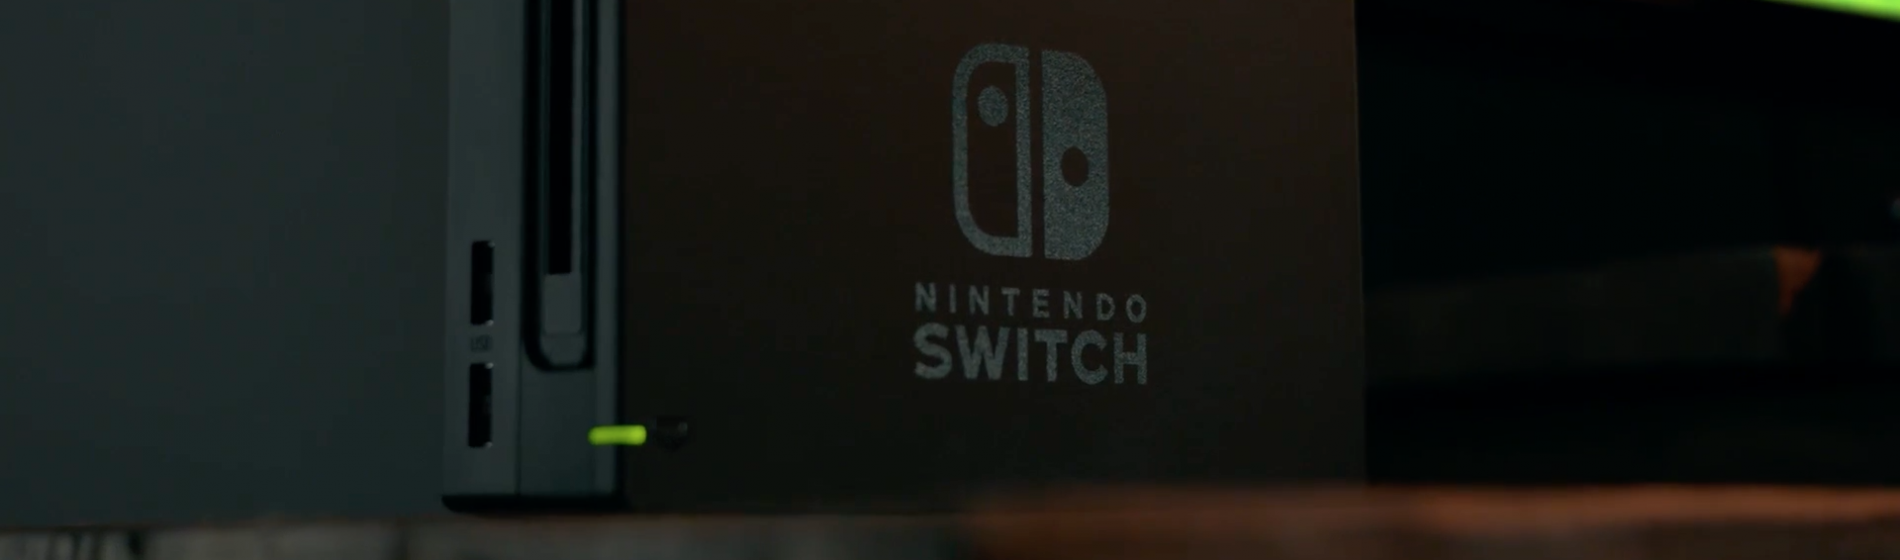 Nintendo-Switch-large